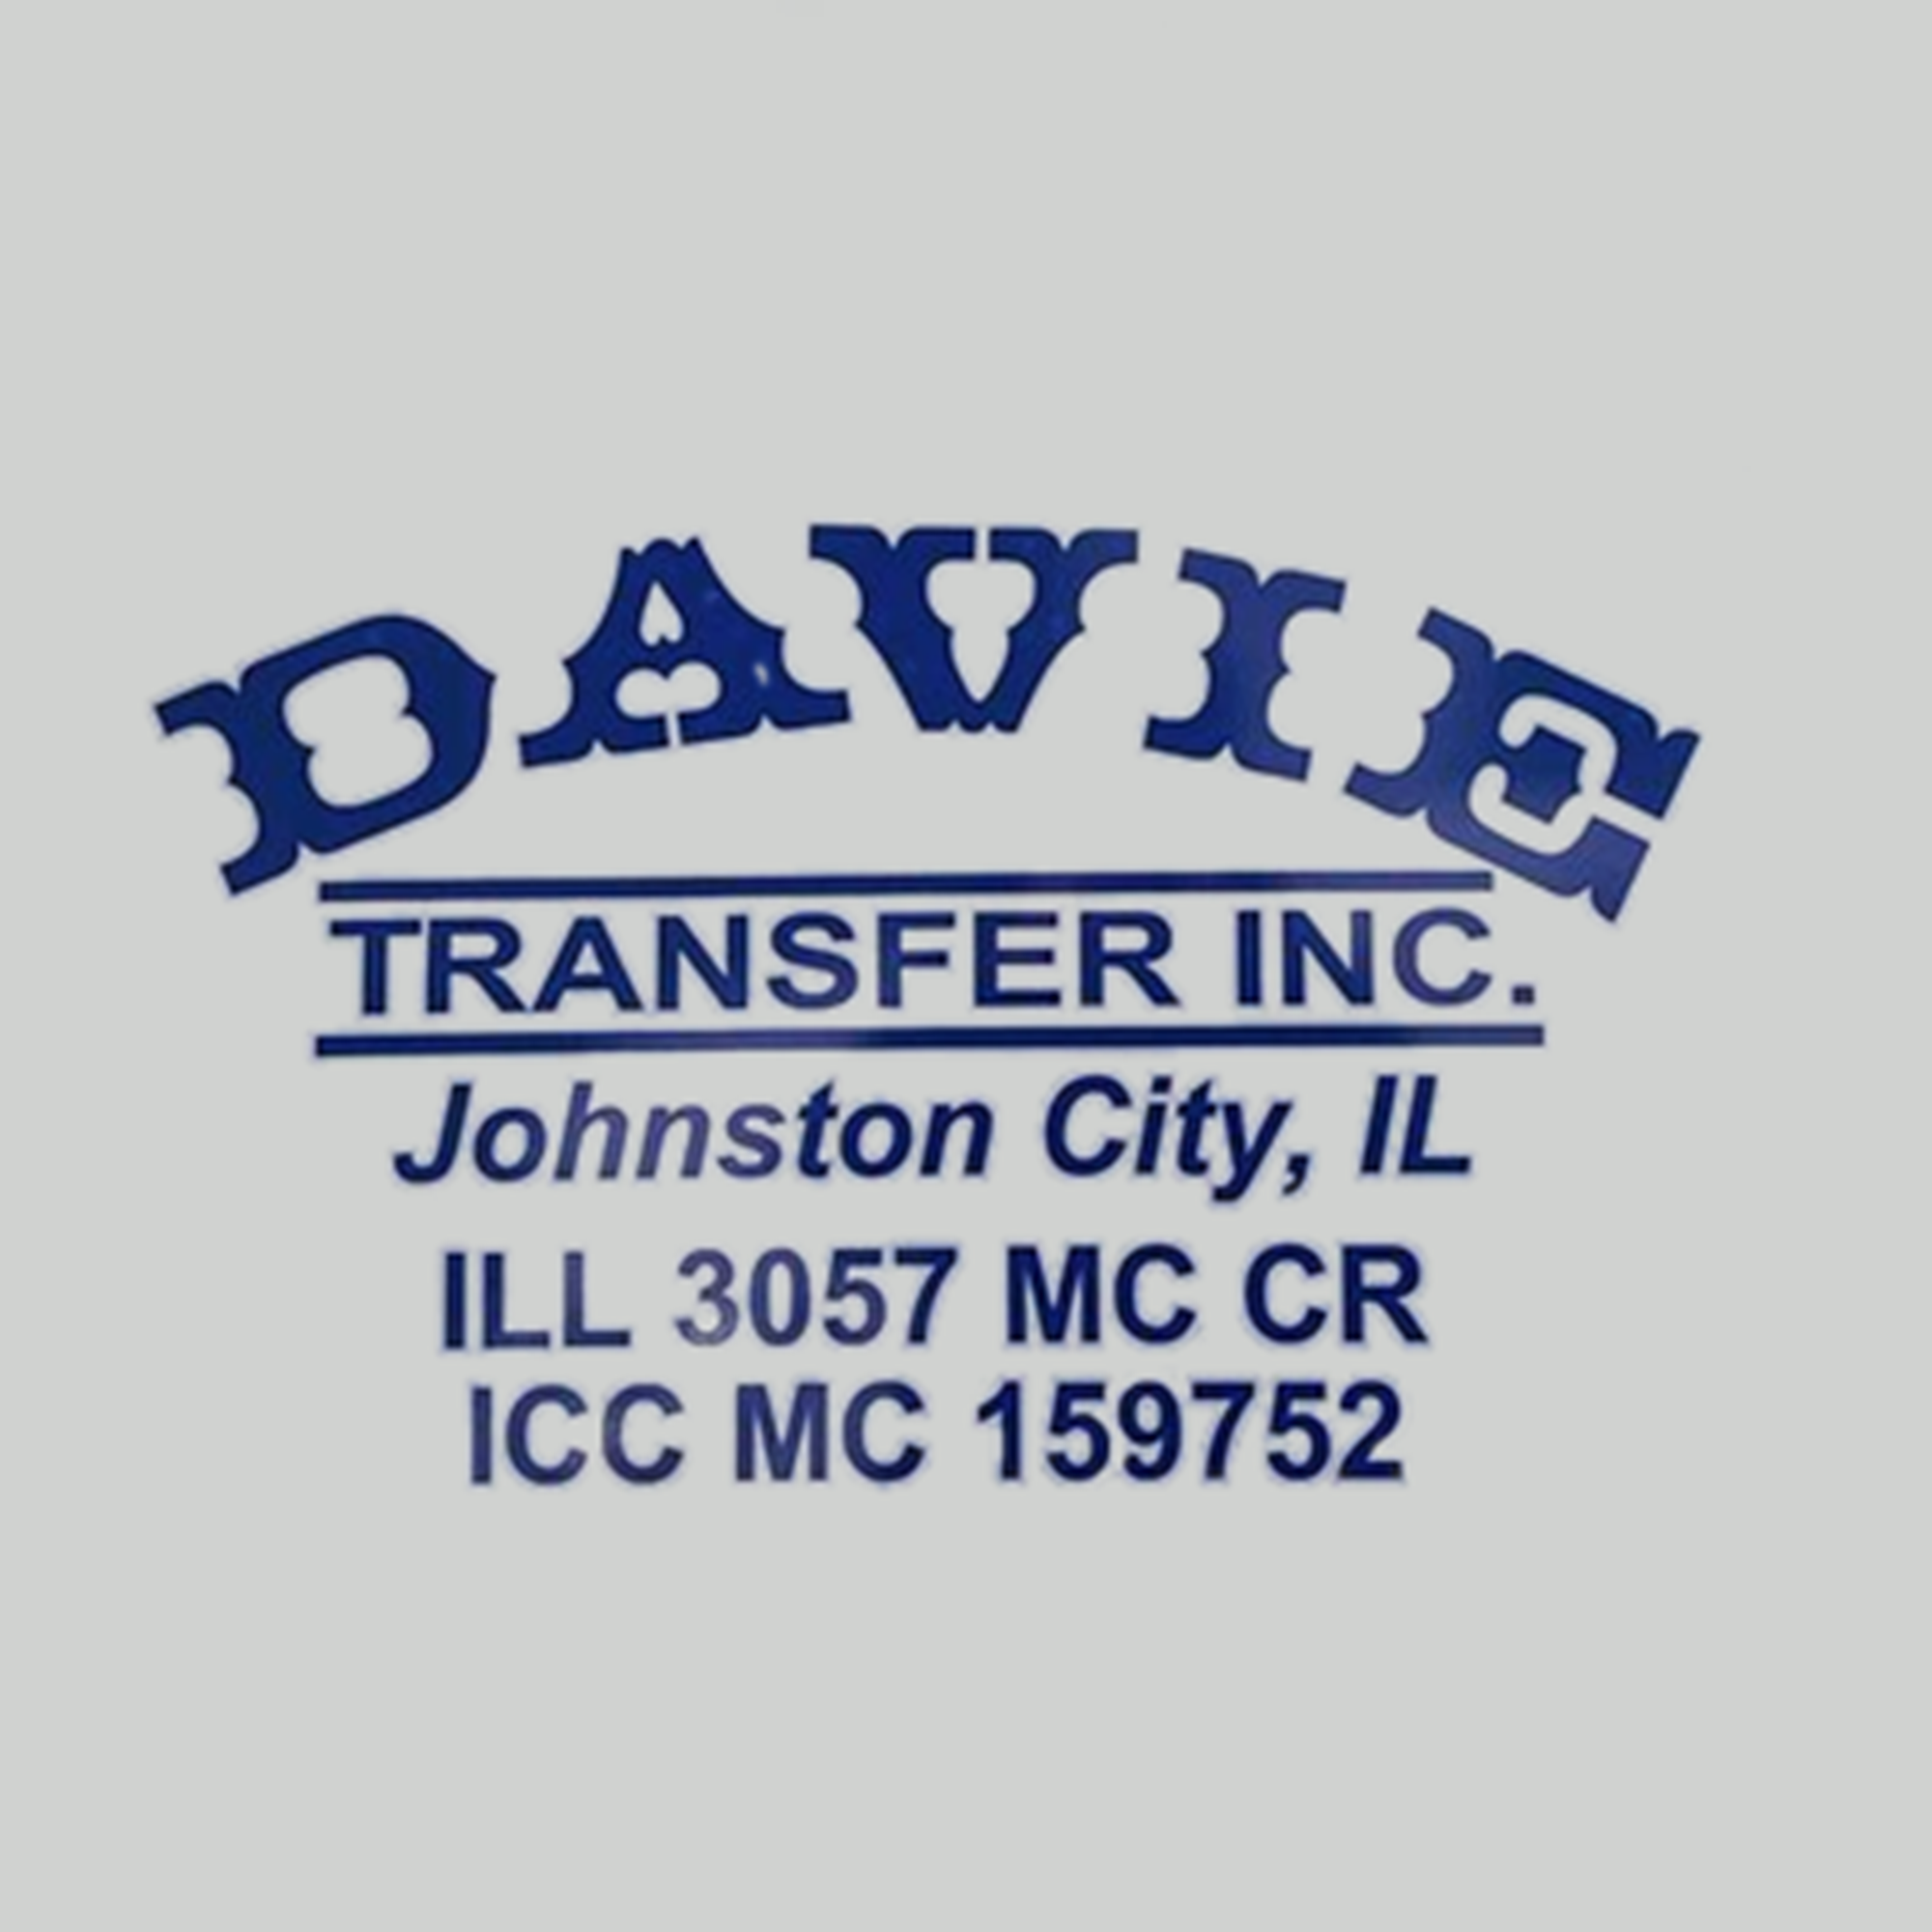 Davie Transfer Inc,